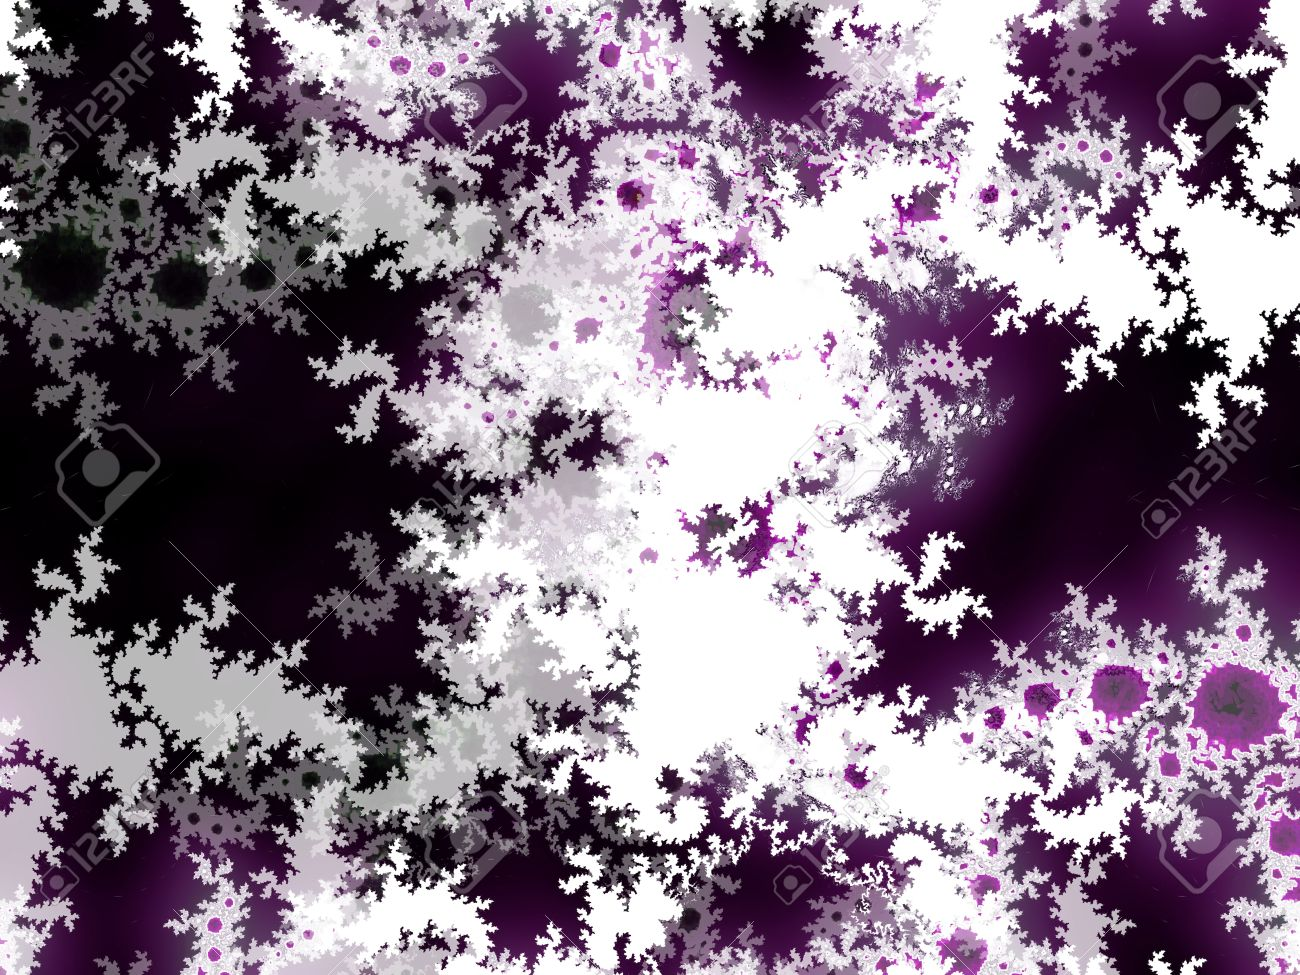 Purple Black And White Abstract Mysterious Background Stock Photo